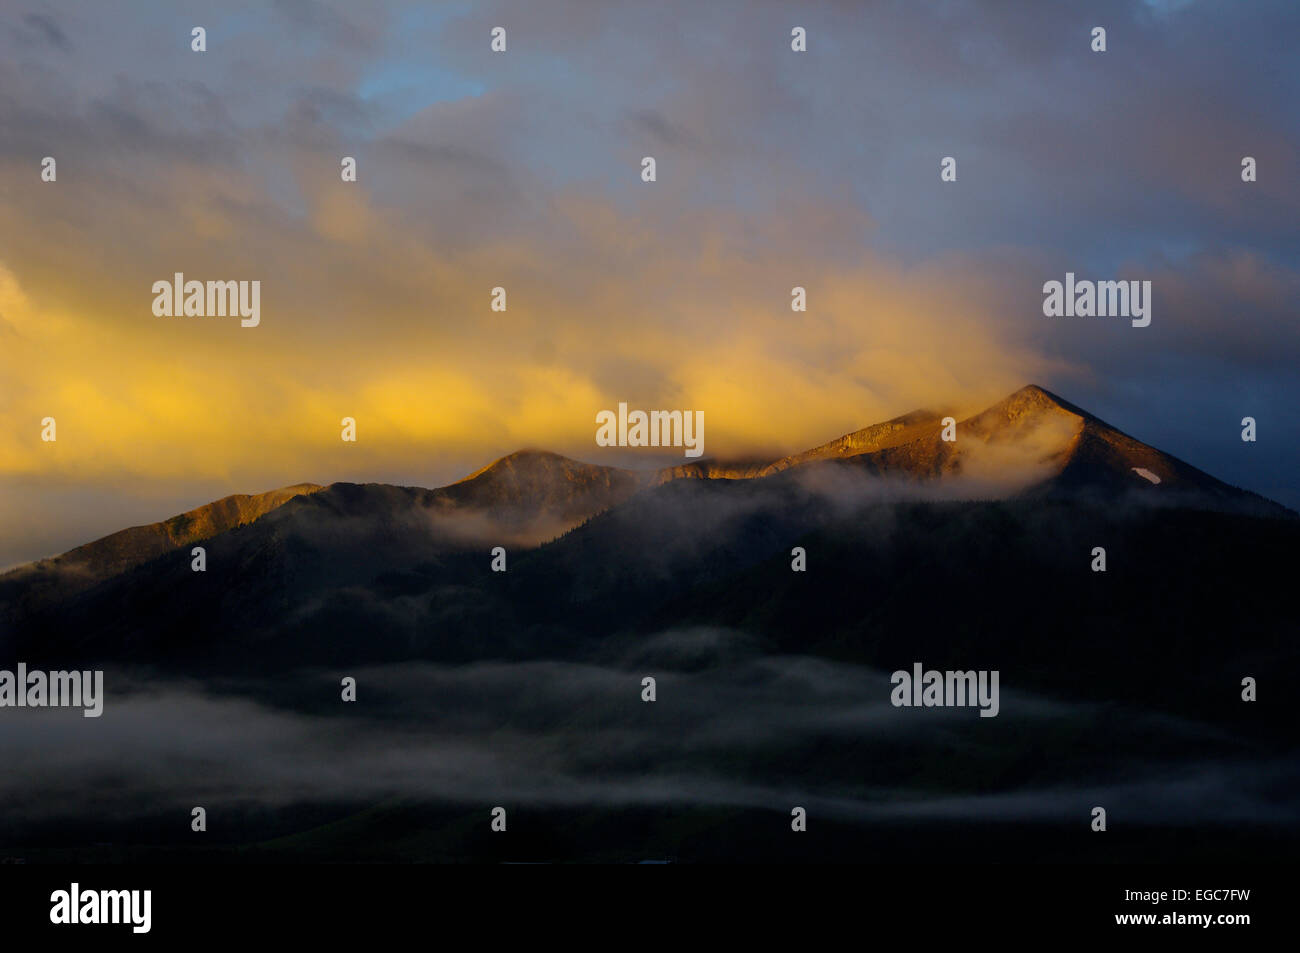 Sunrise in Crested Butte, Colorado.  Orange clouds above the Rocky Mountains on a foggy morning. - Stock Image